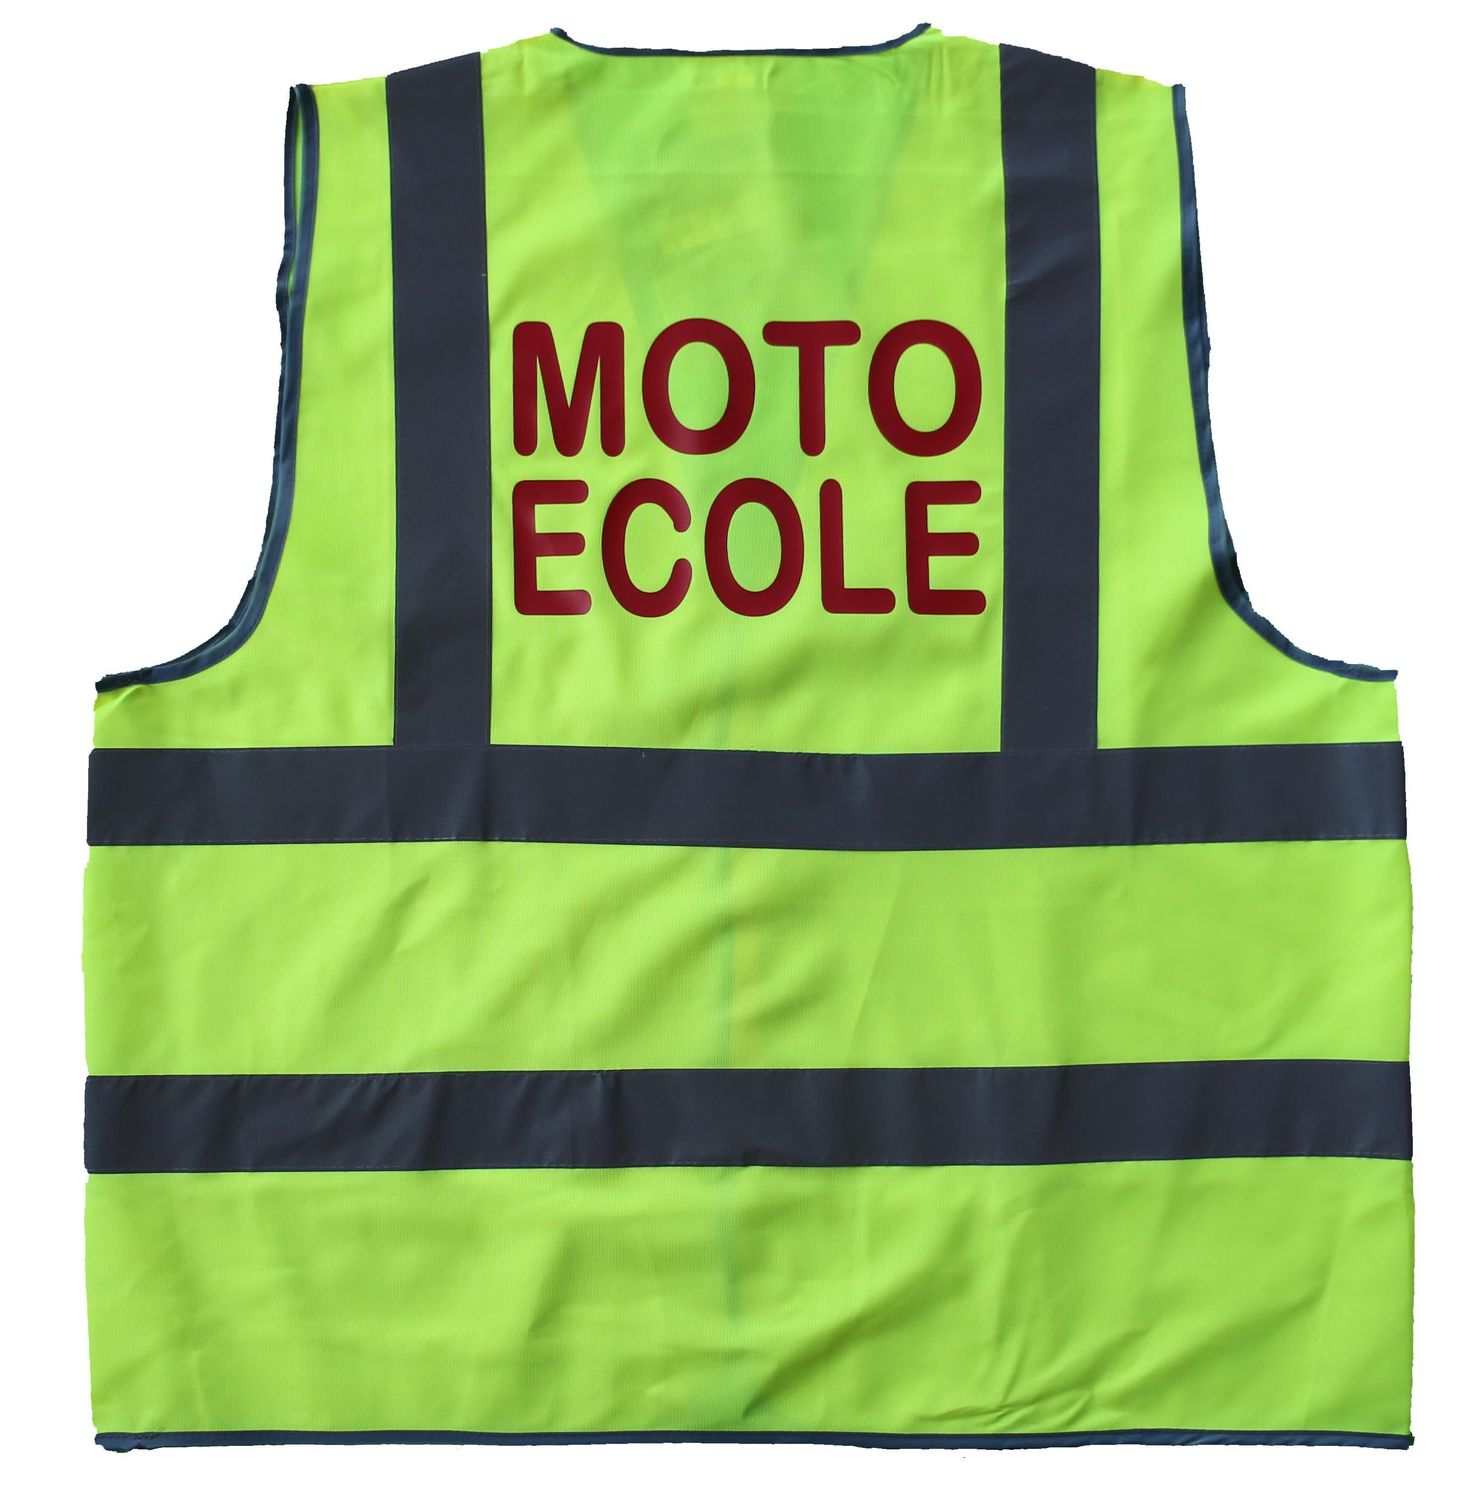 gilet de s curit jaune fluo marquage au dos moto ecole ebay. Black Bedroom Furniture Sets. Home Design Ideas